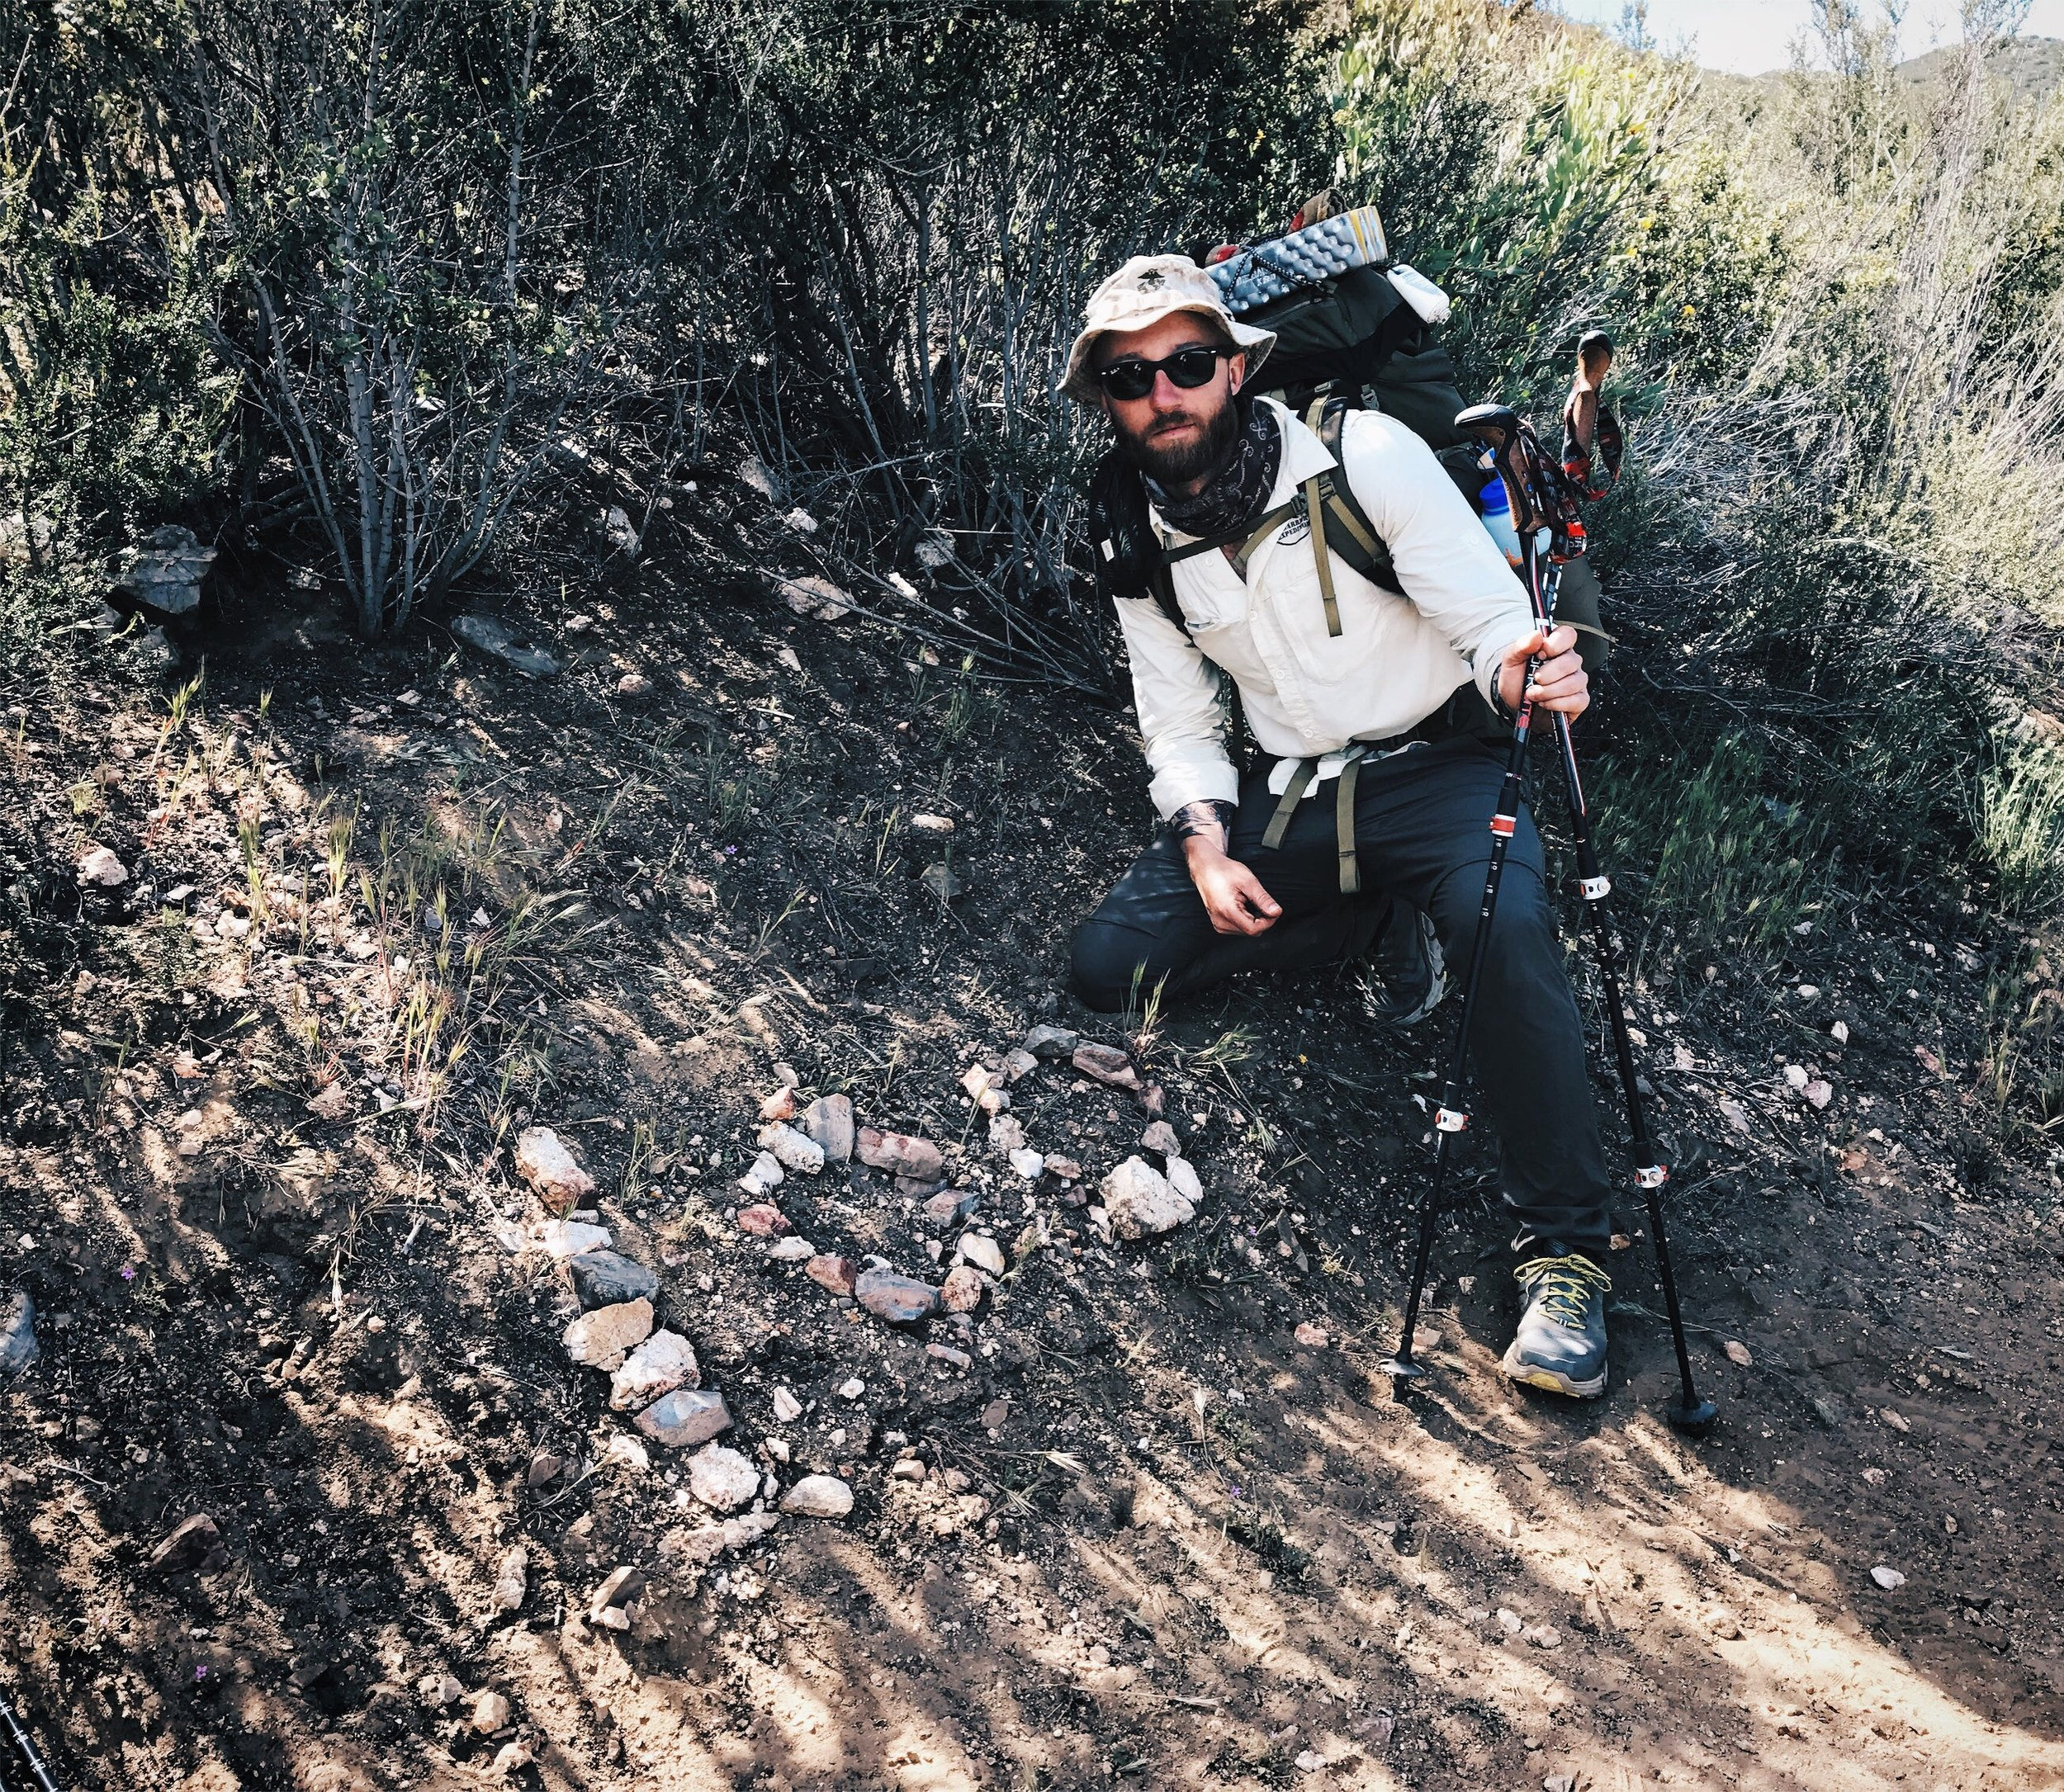 So weird knowing you've hiked 100 miles. Not sure what to make of it